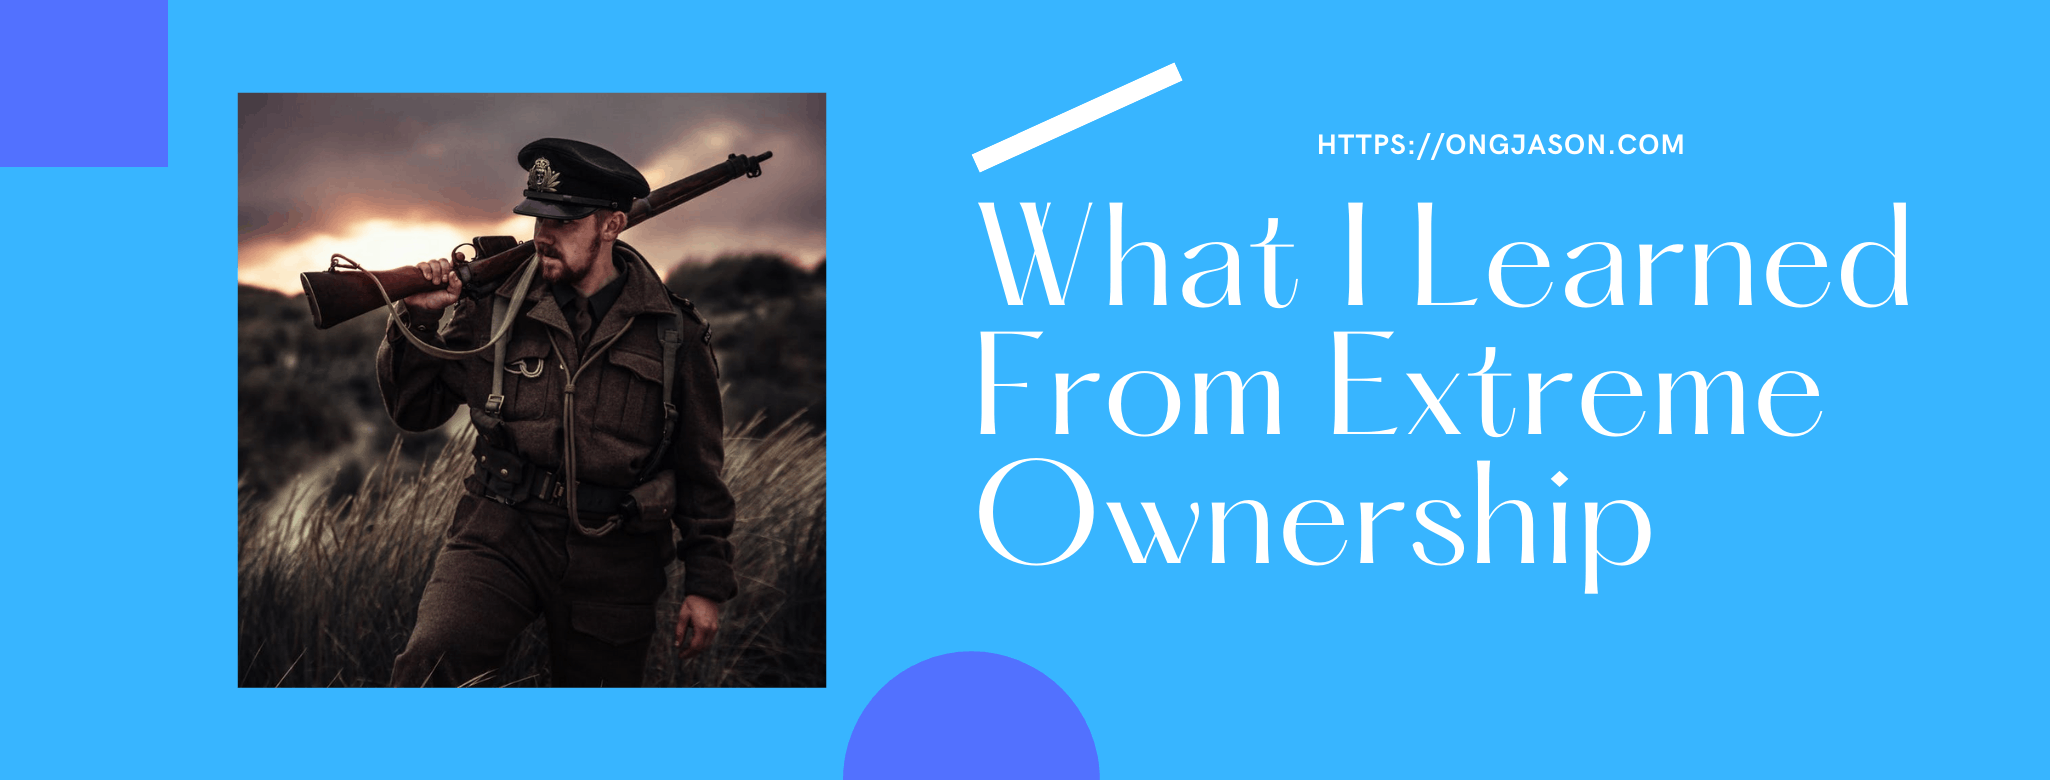 What I learned from Extreme Ownership